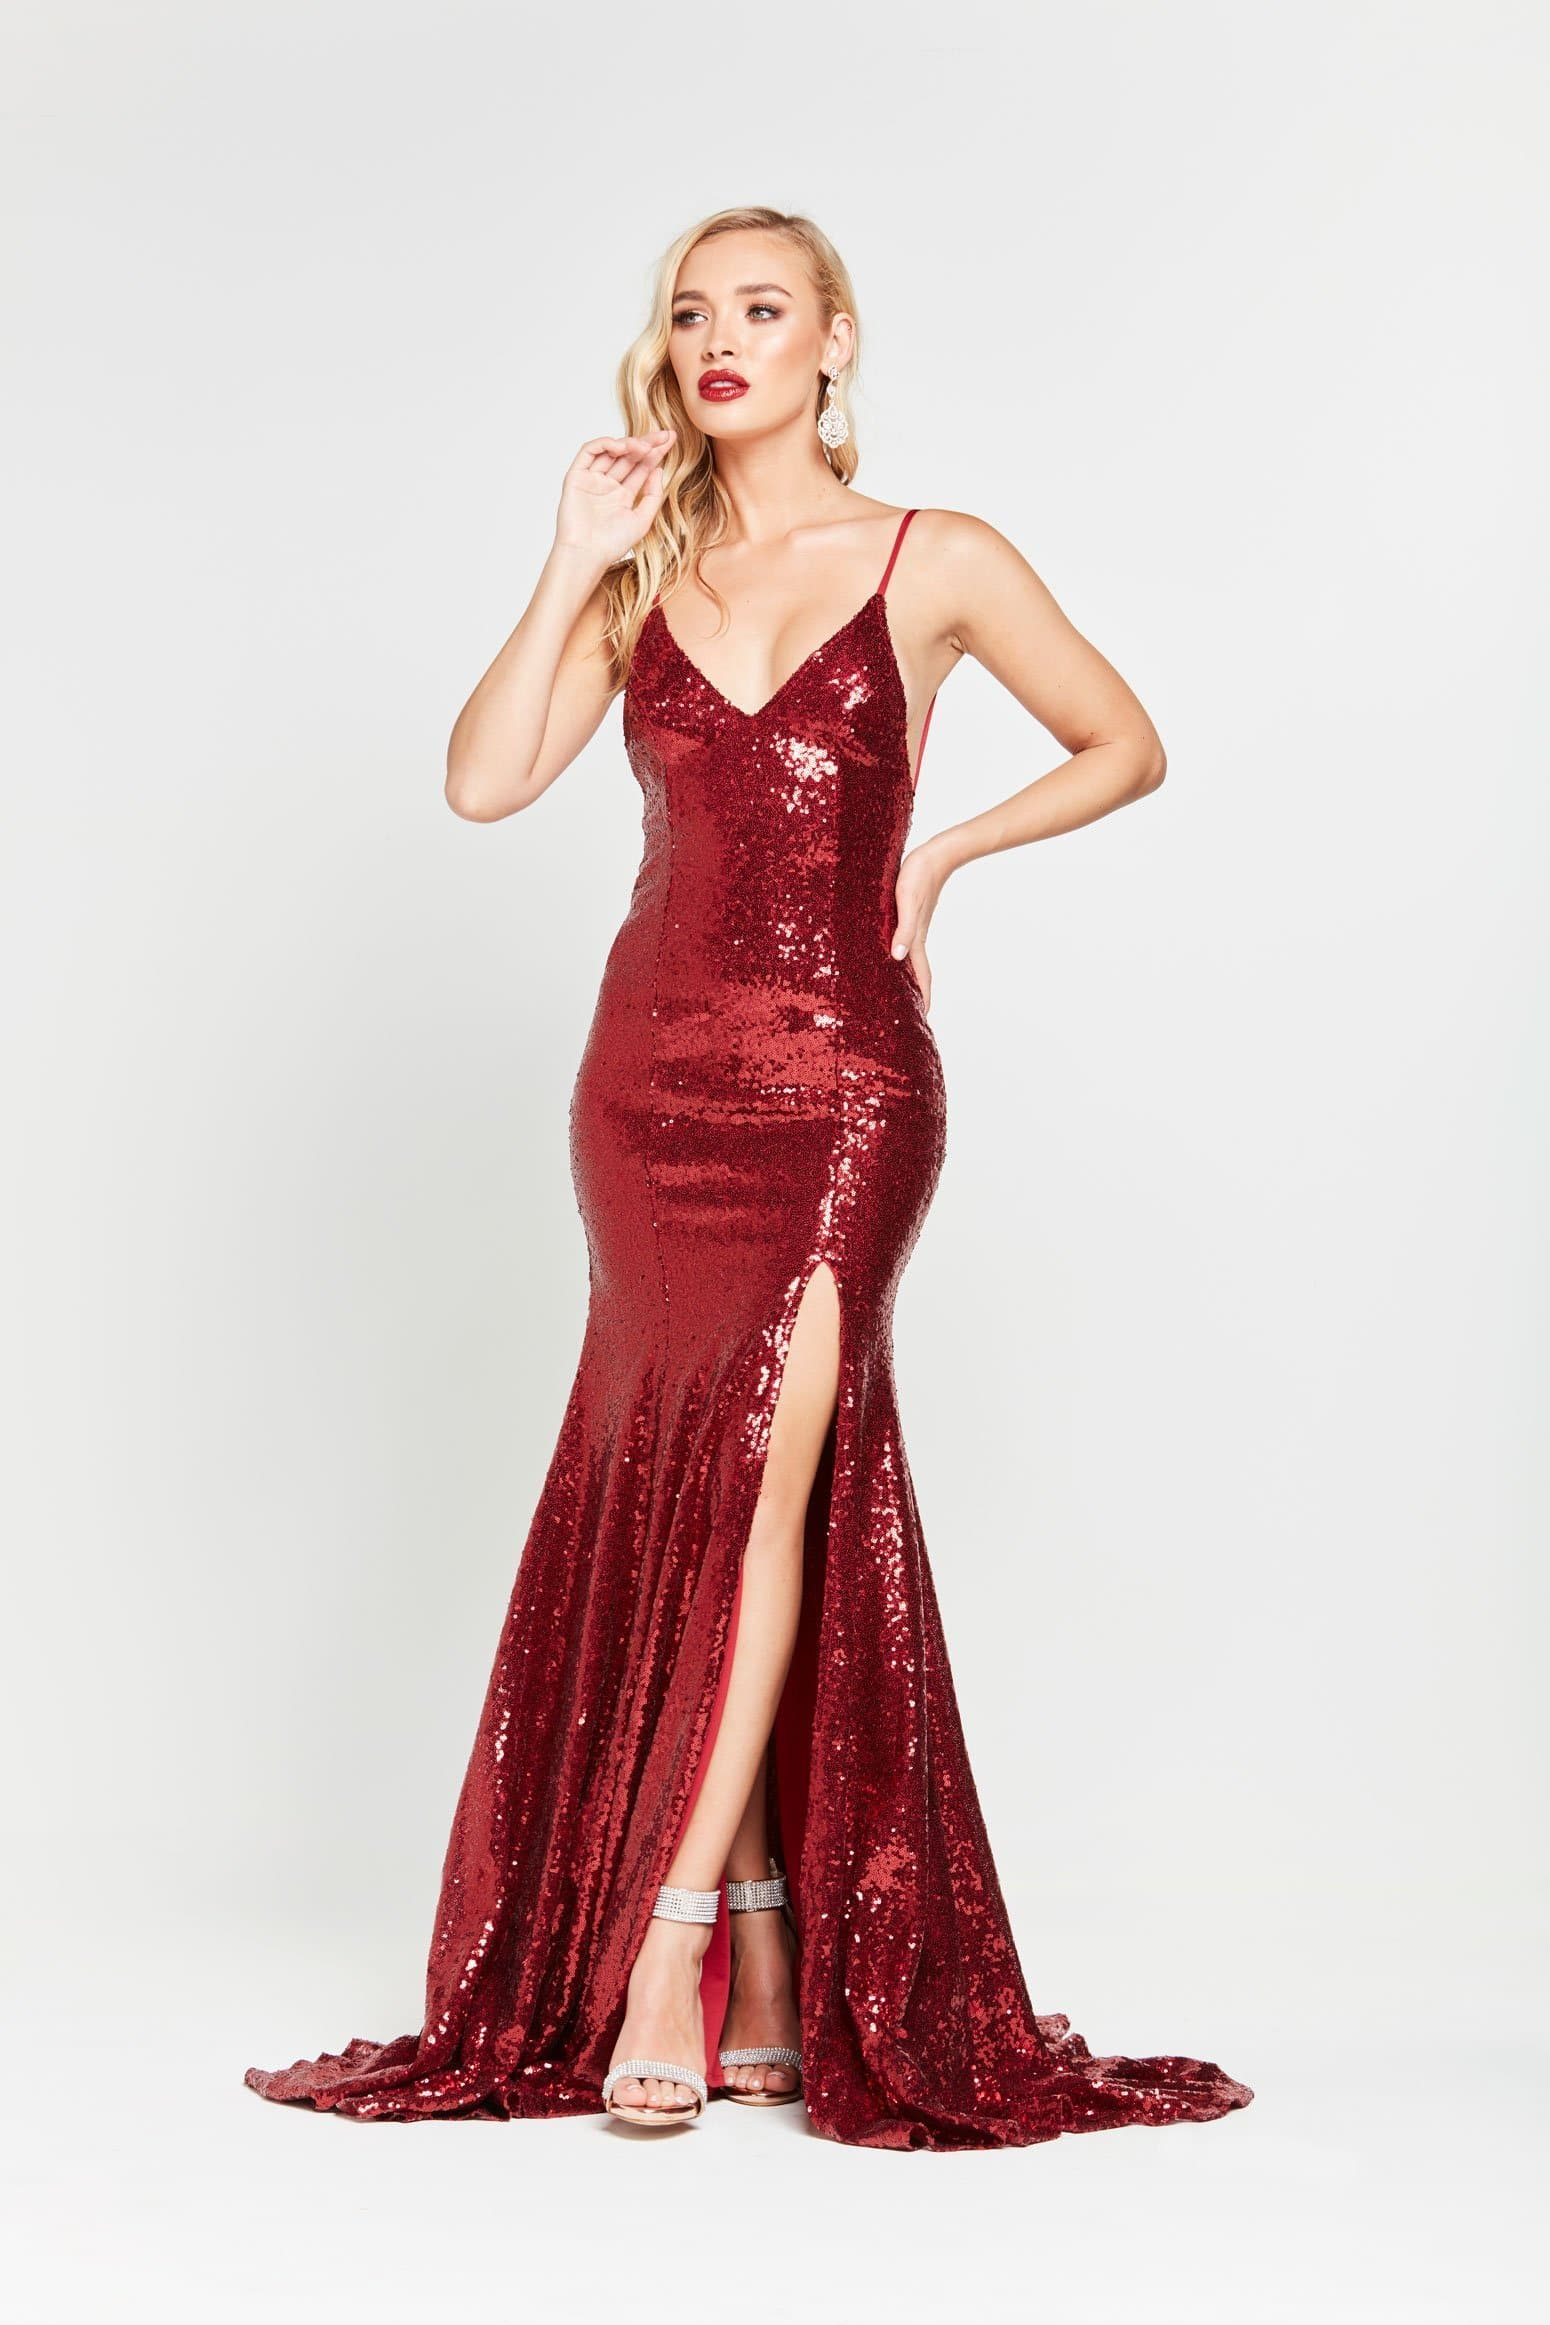 Kara Formal Dress - Deep Red Slit Sequinned Mermaid Prom Gown